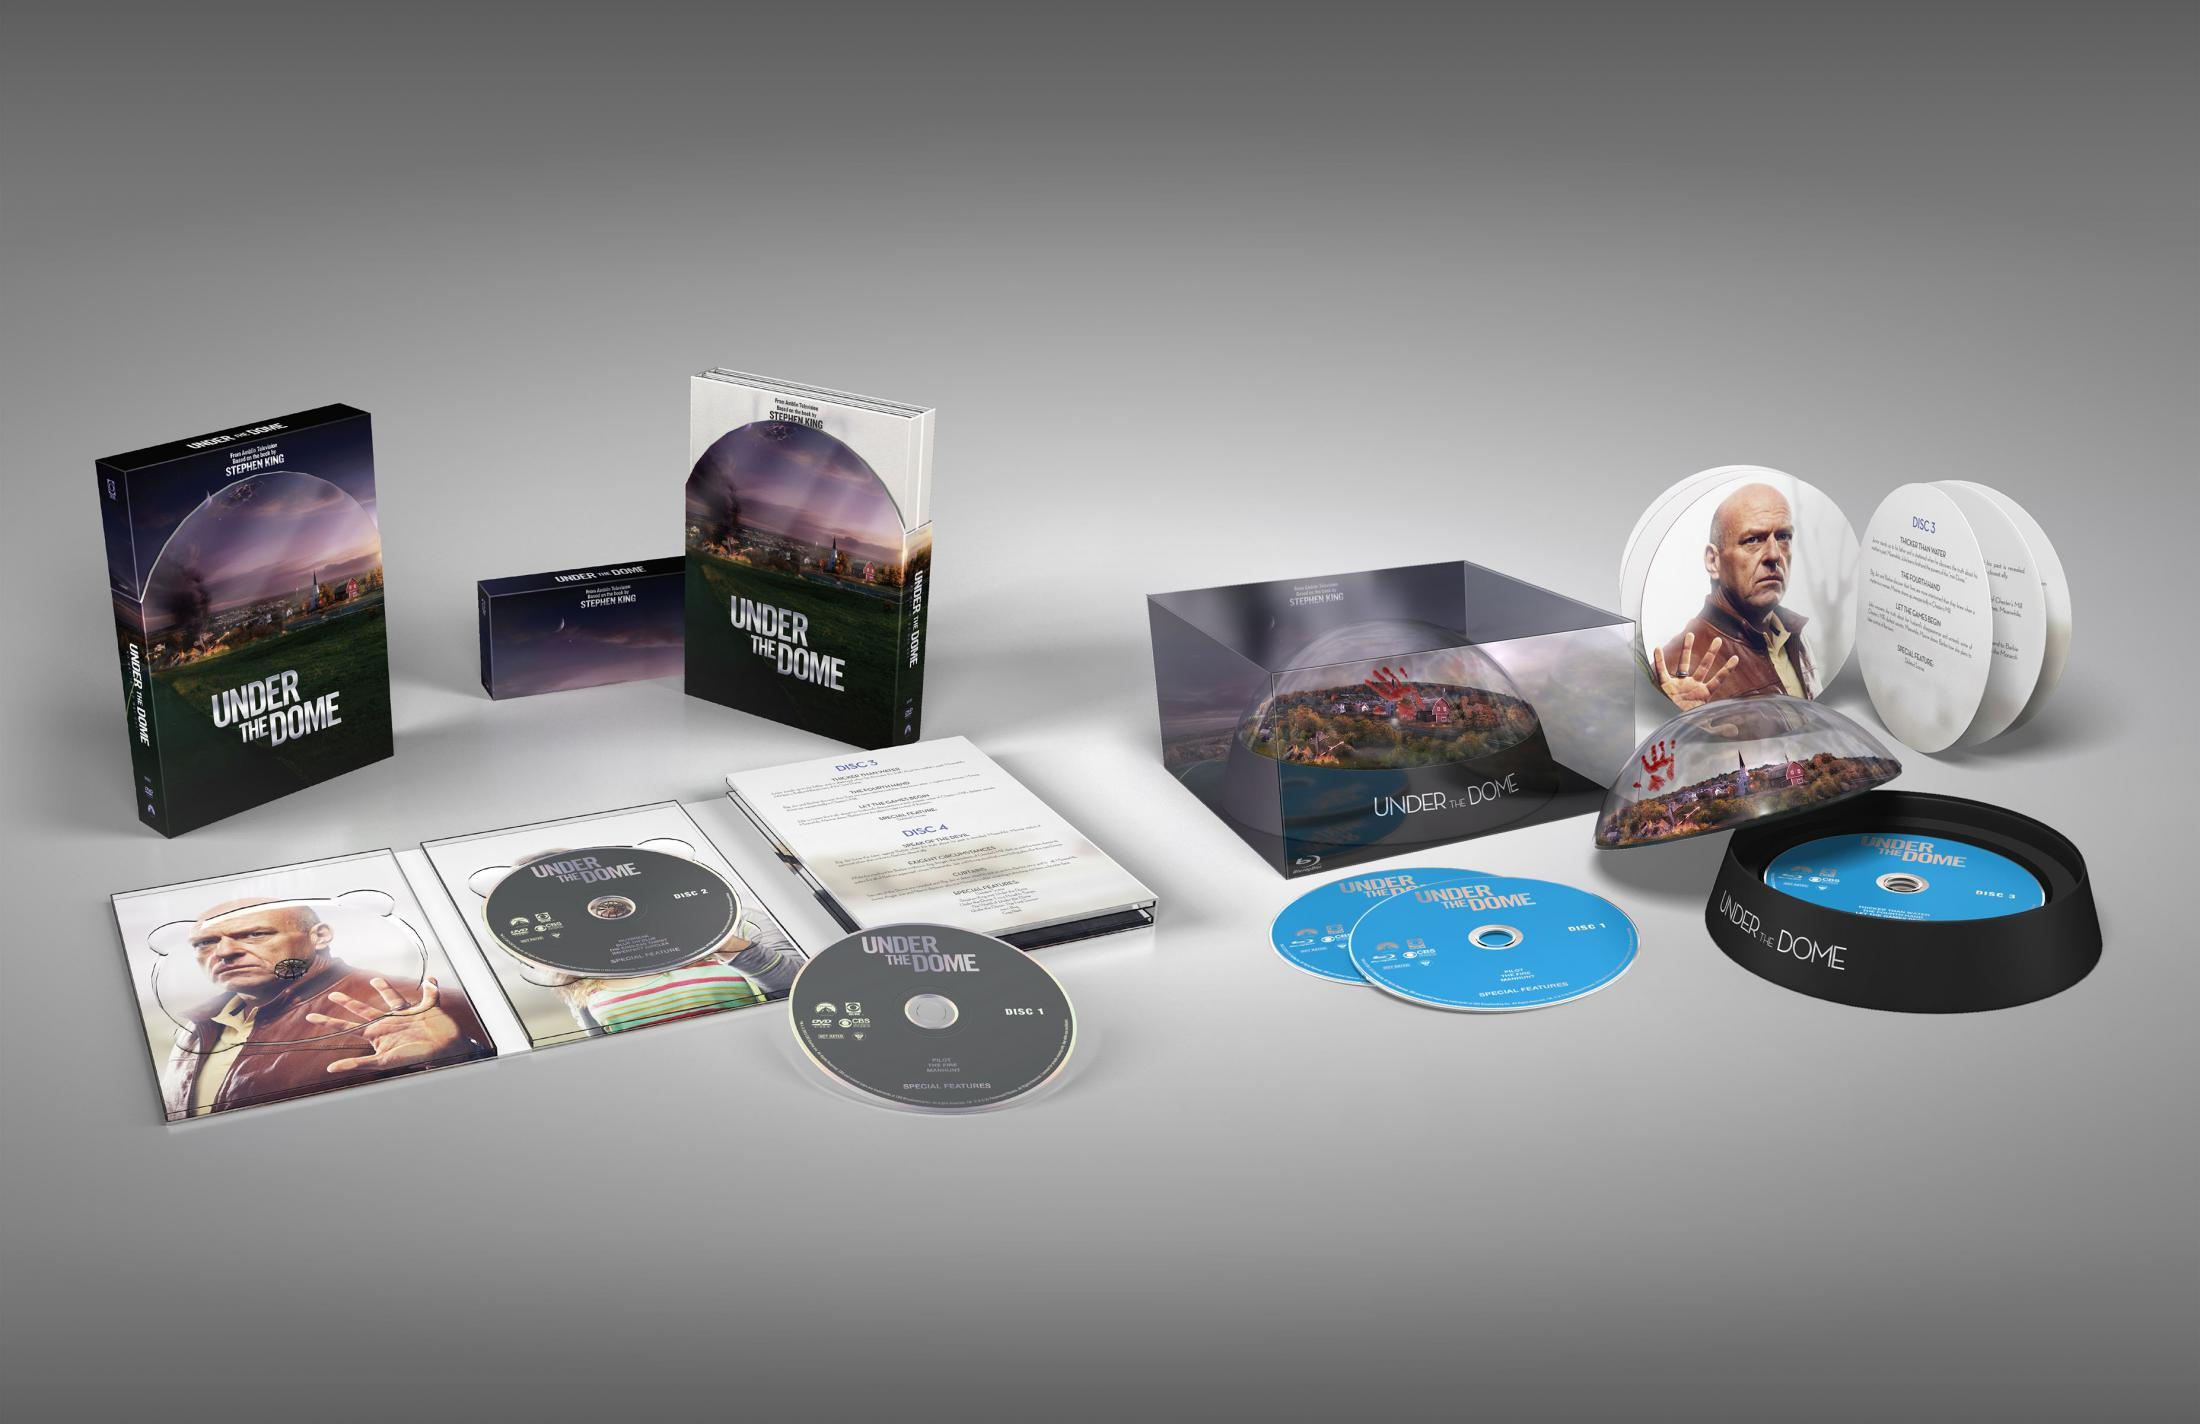 Thumbnail for Collector's Edition Box and Amazon Exclusive Blu-ray Dome Edition